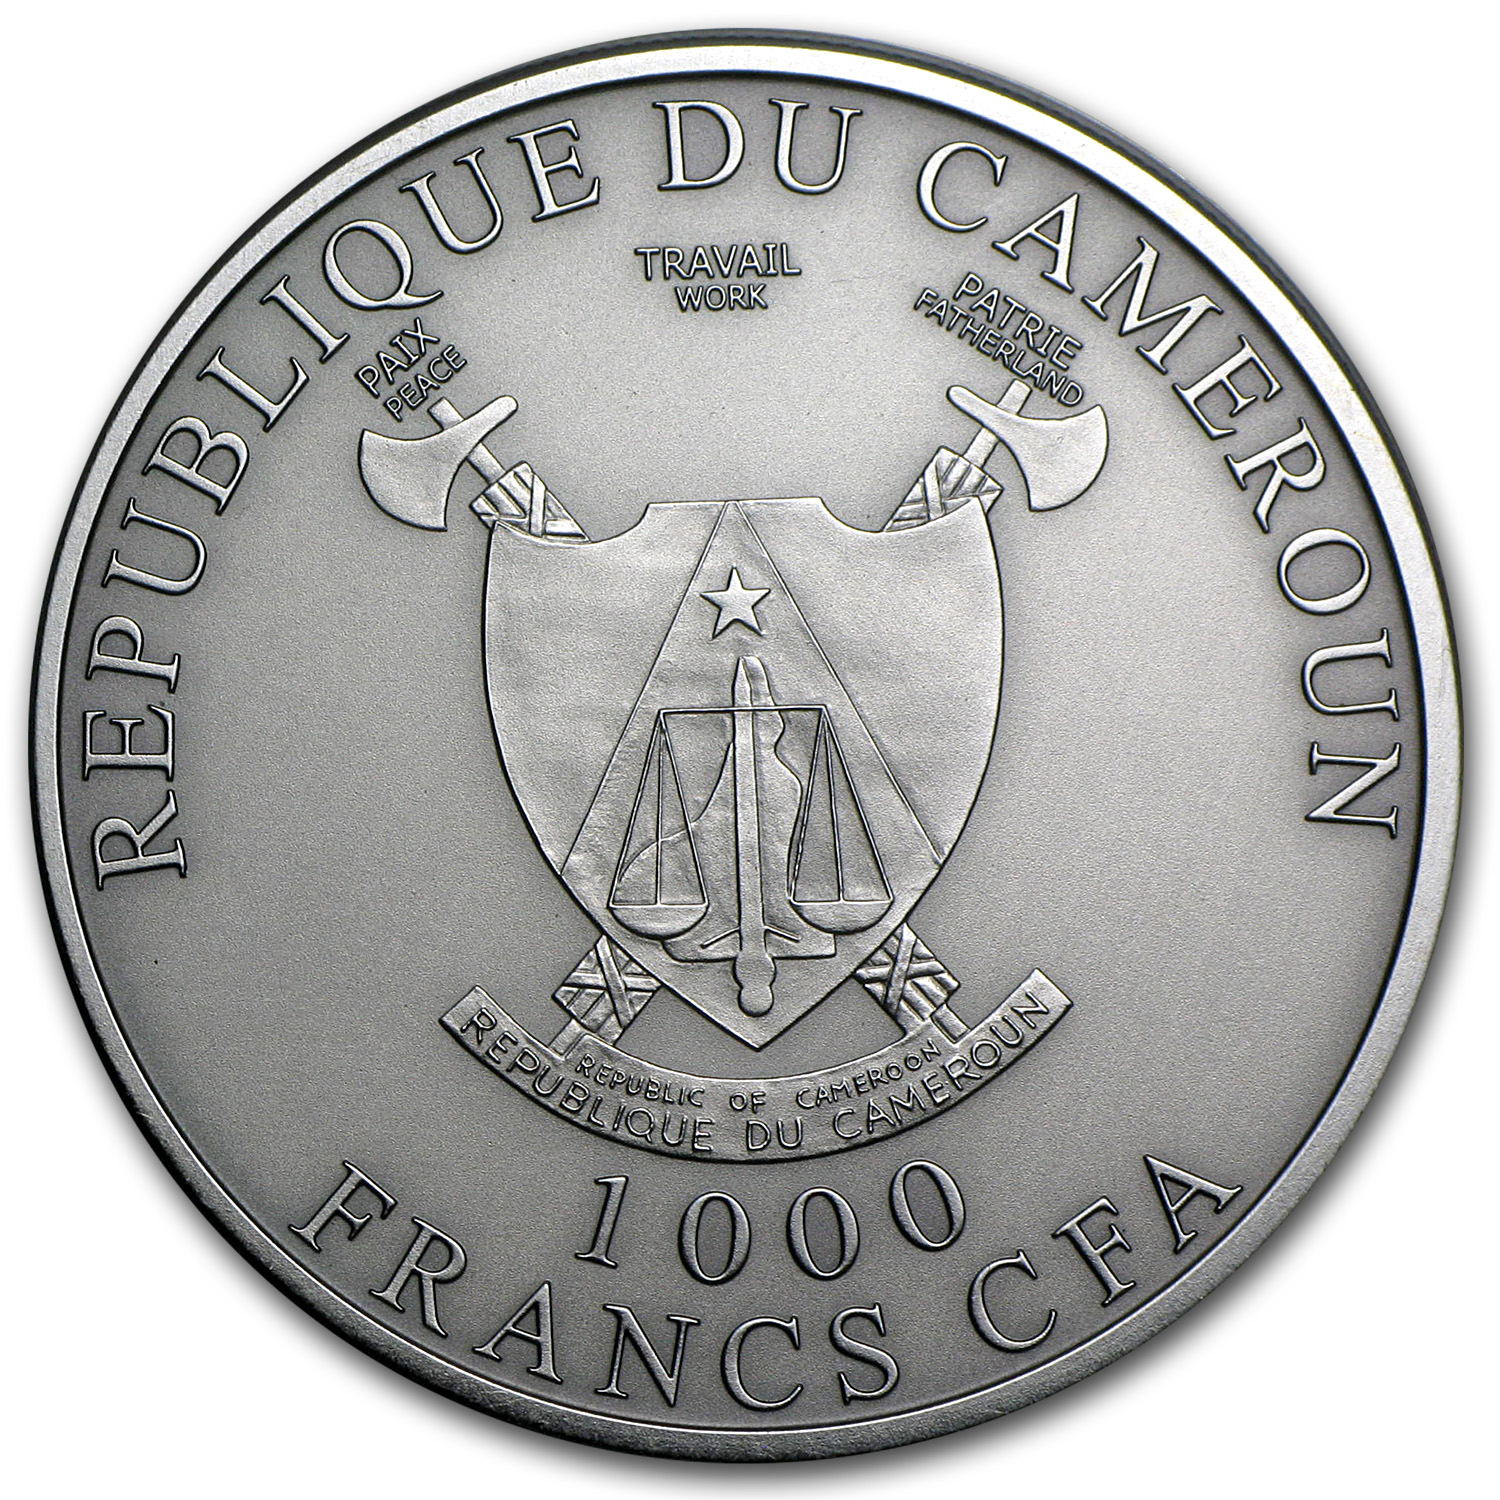 Cameroon 2012 1 oz Silver 1,000 Francs CFA - Cross River Gorilla